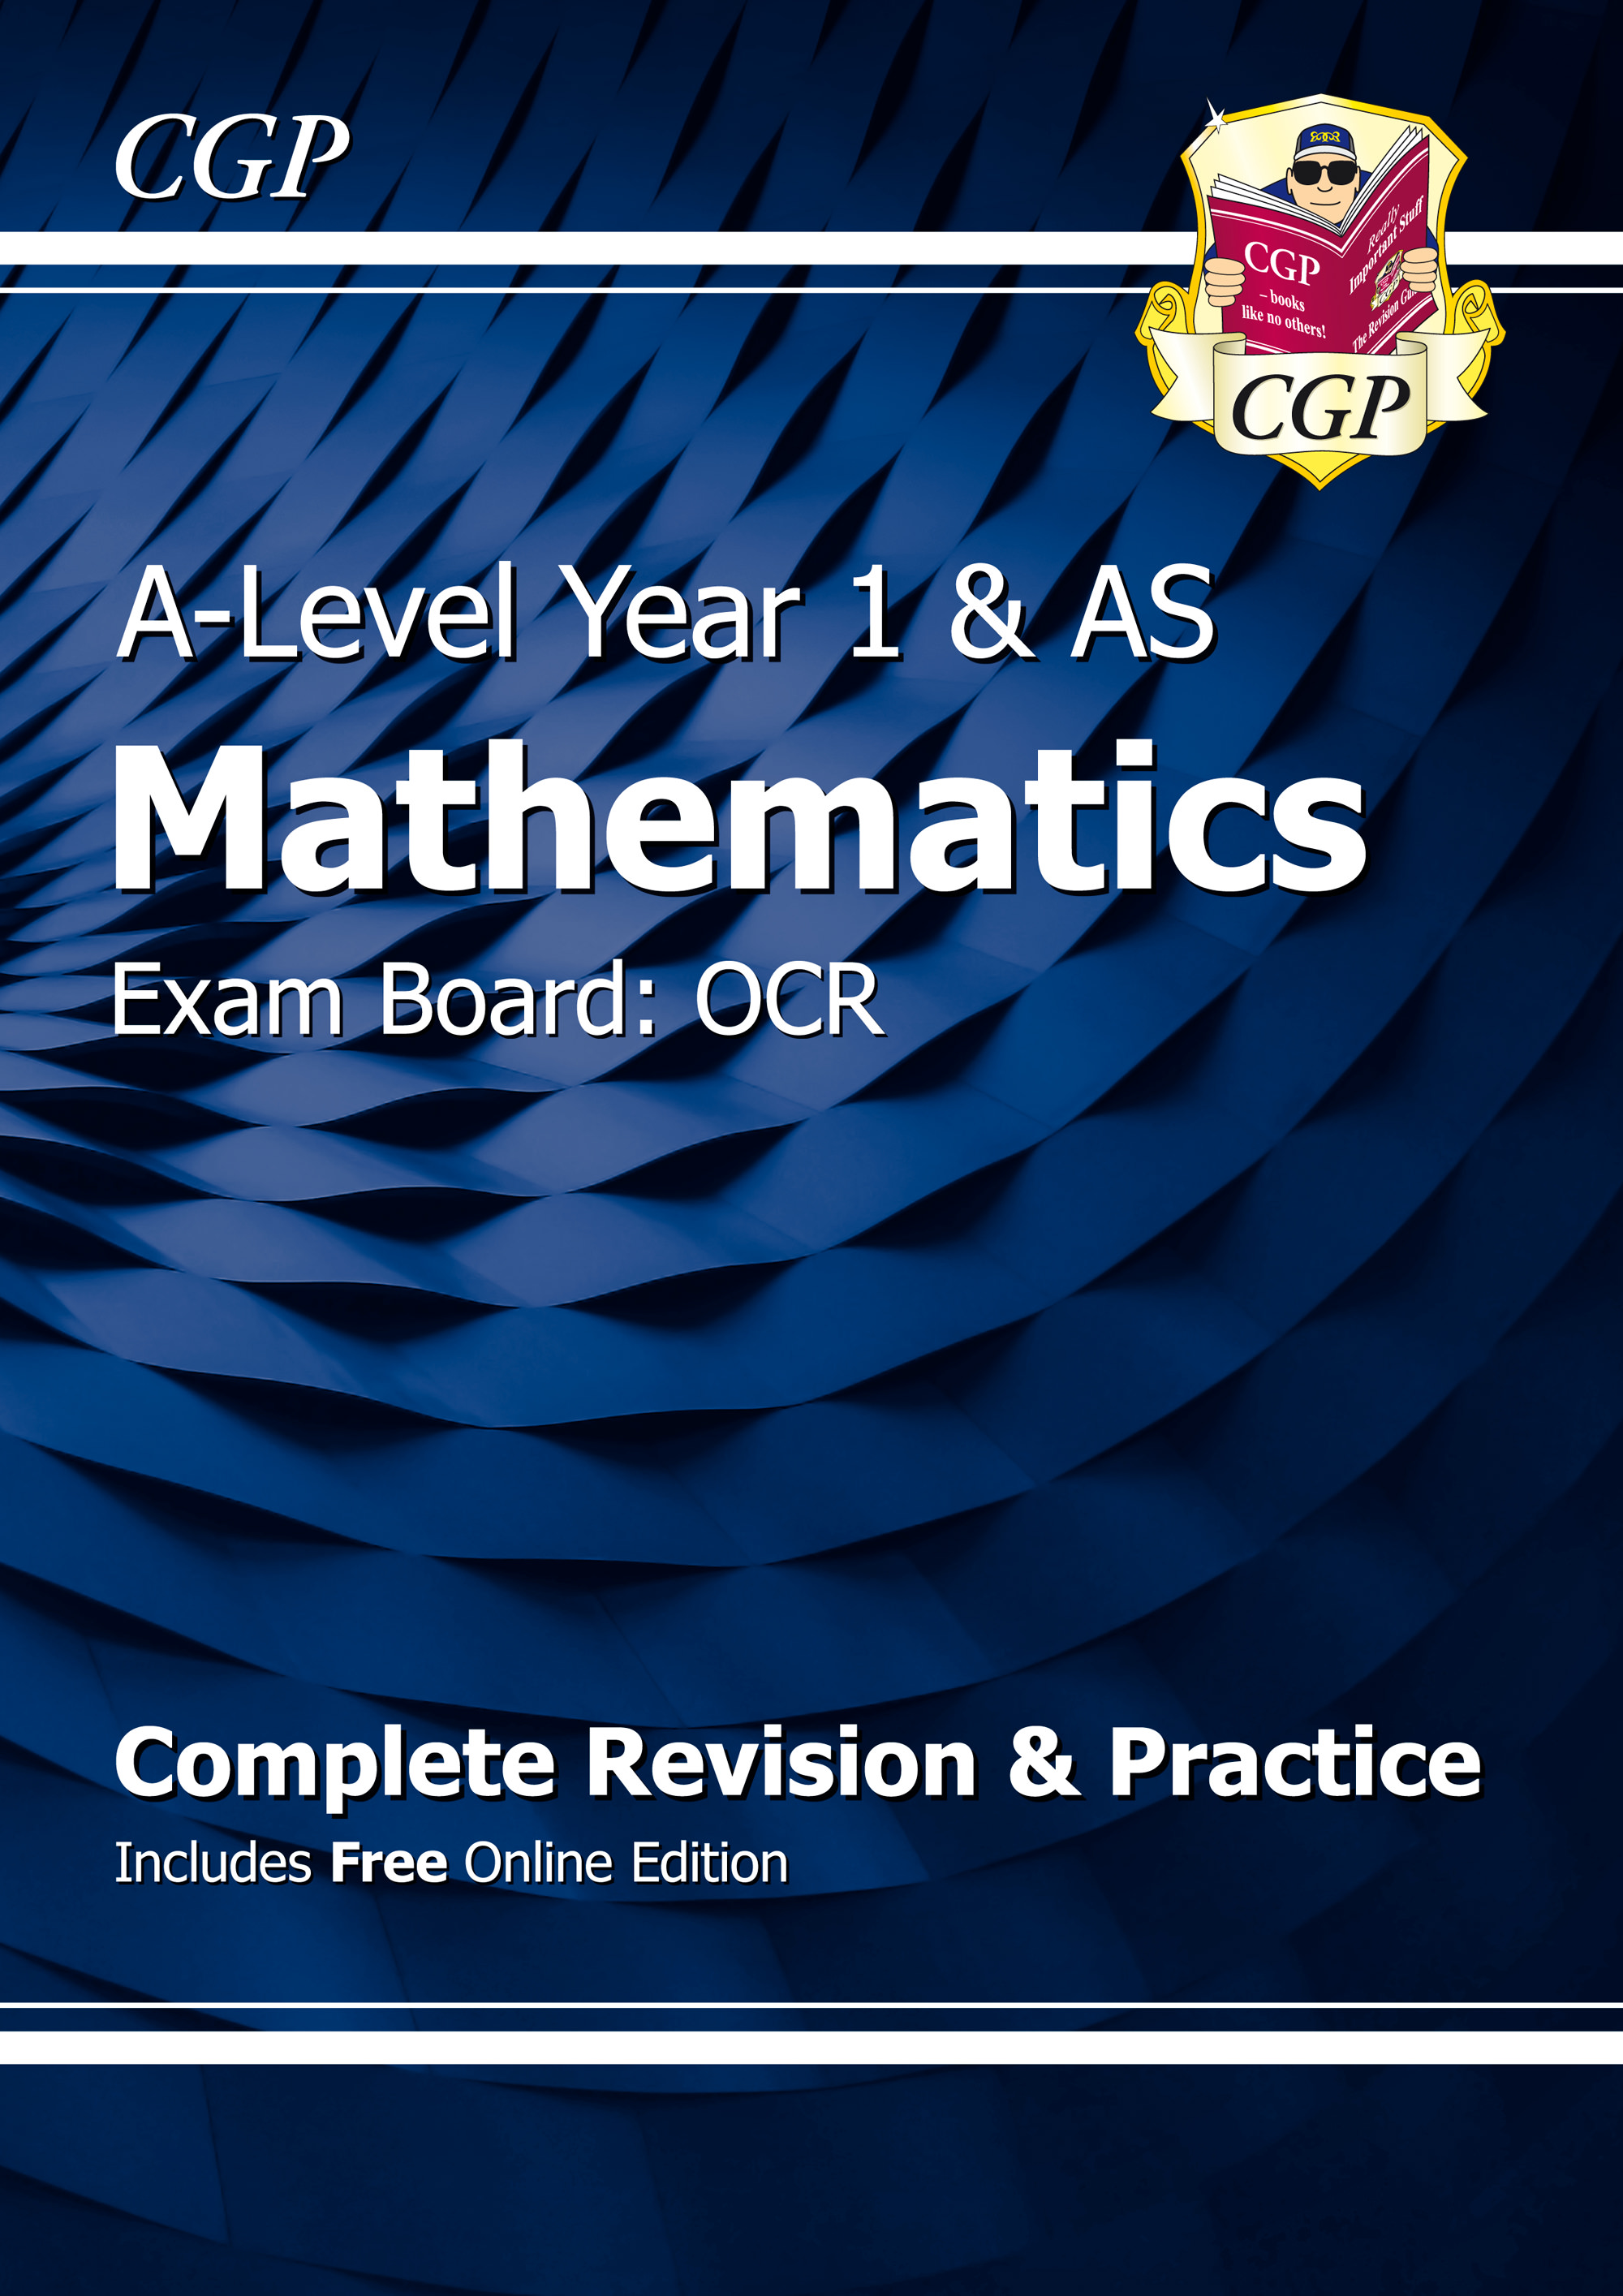 MRAR52 - A-Level Maths for OCR: Year 1 & AS Complete Revision & Practice with Online Edition